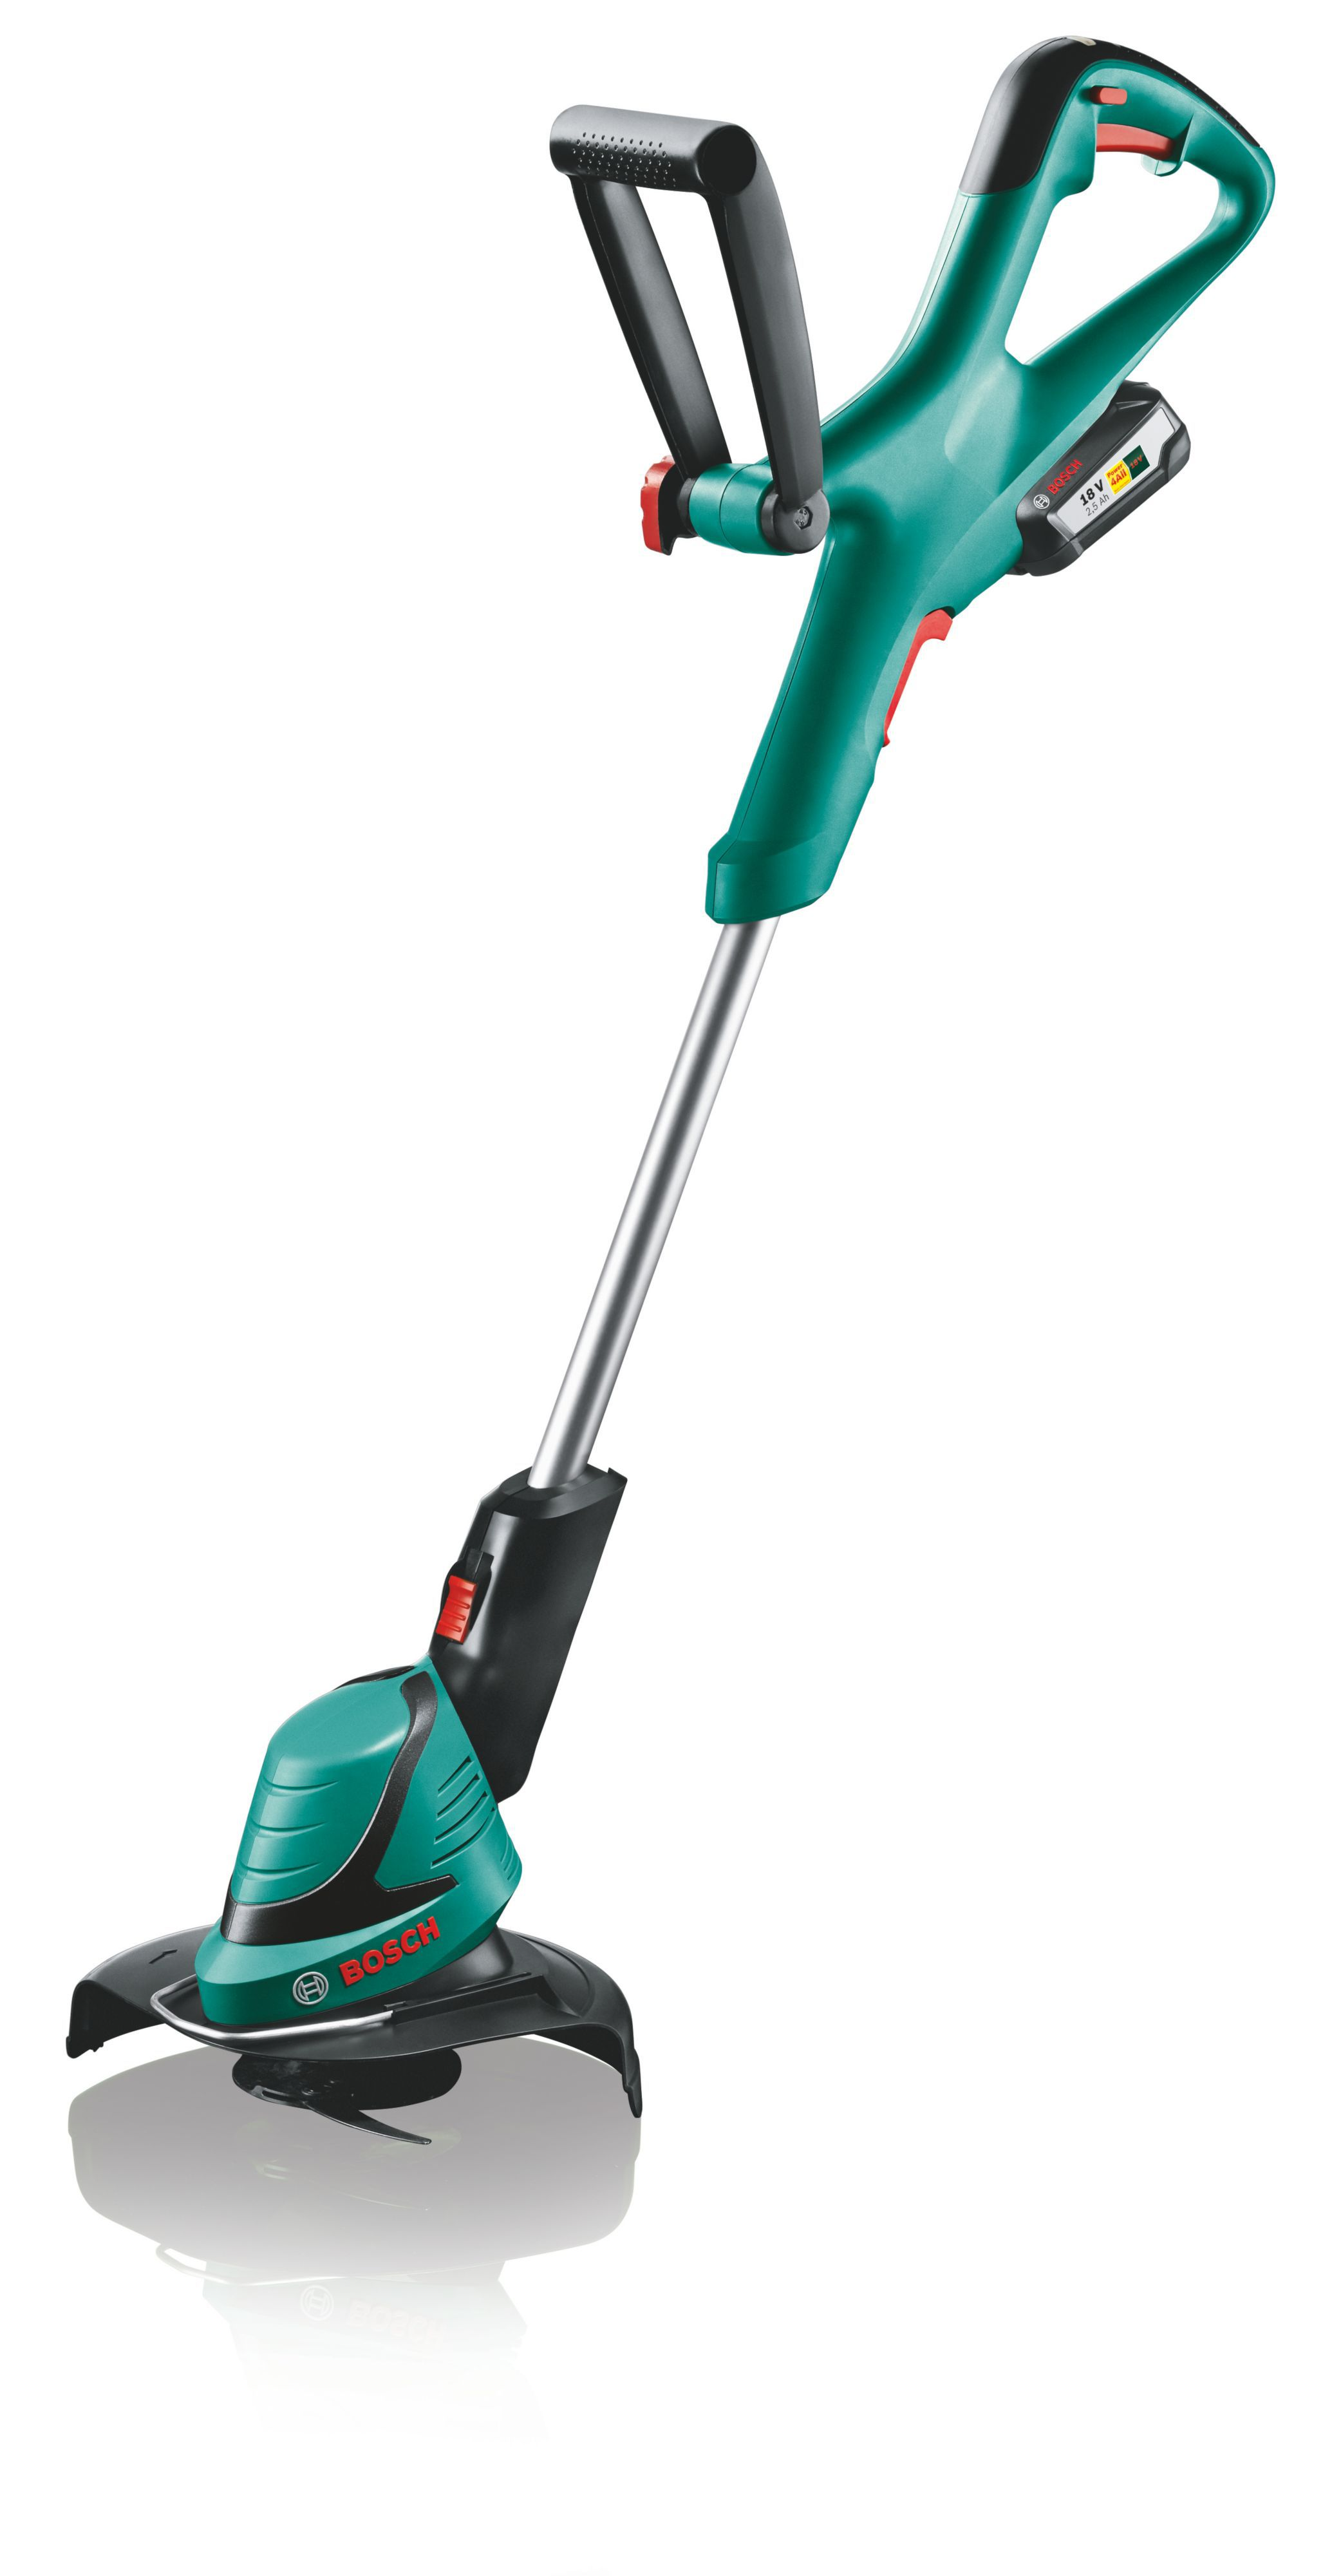 Bosch Art 23-18 Electric Cordless Li-ion Grass Trimmer